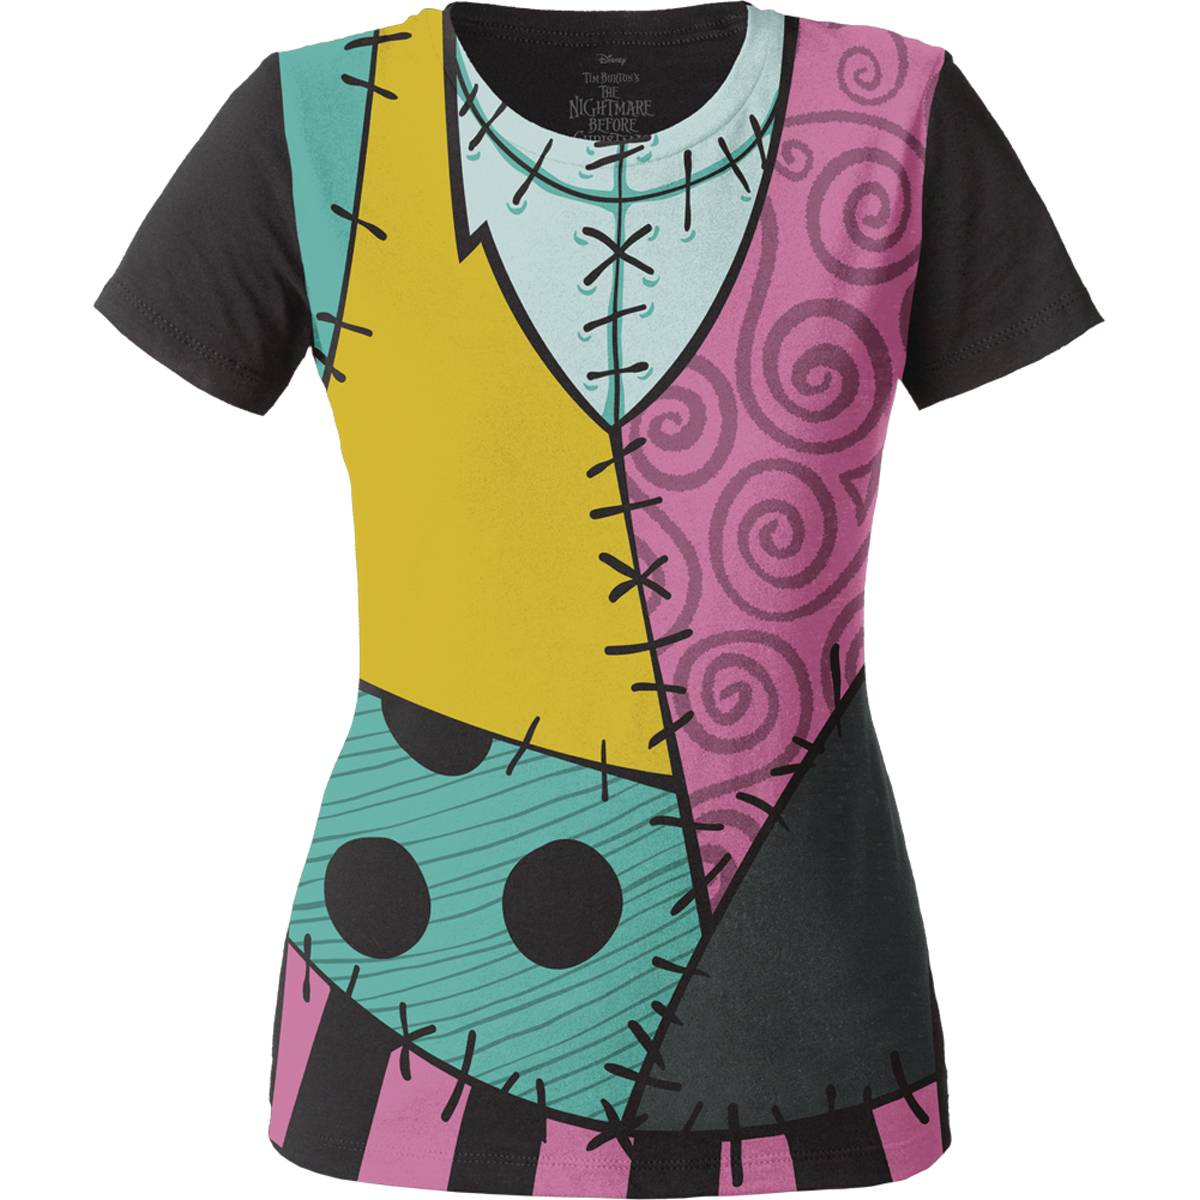 NIGHTMARE BEFORE CHRISTMAS SALLY CHARACTER T/S LG